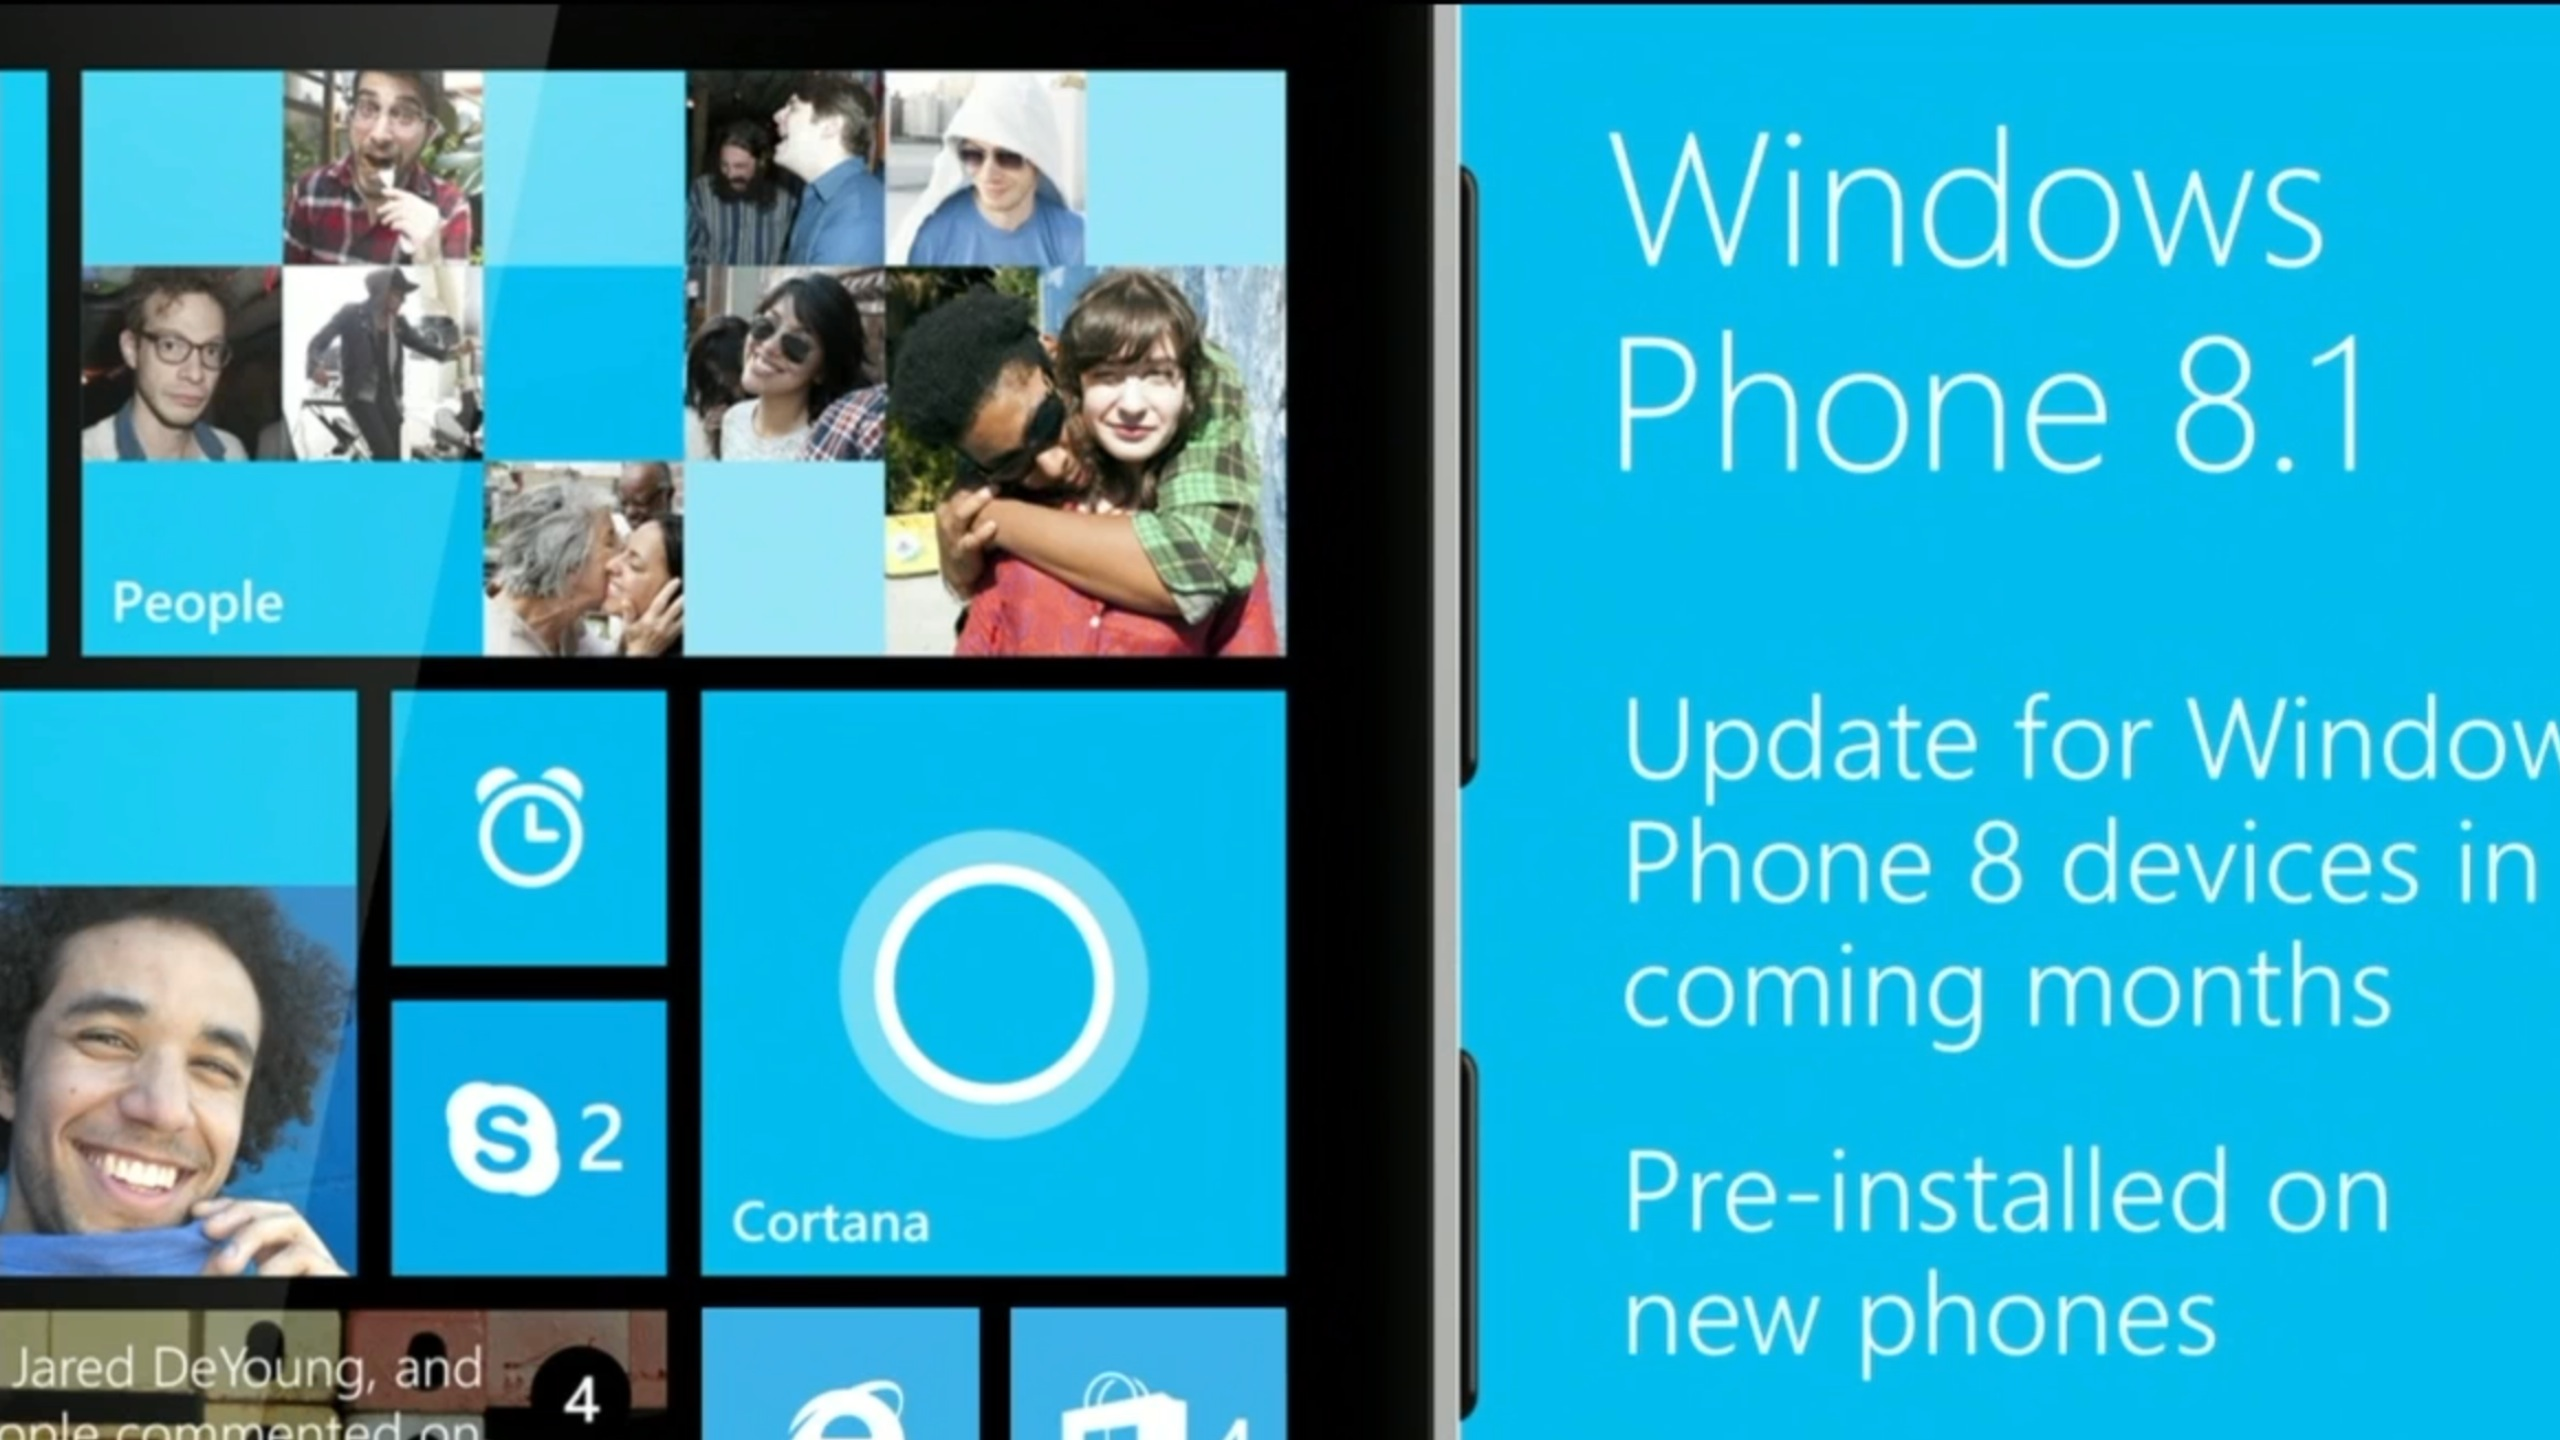 Window-Phone-8.1